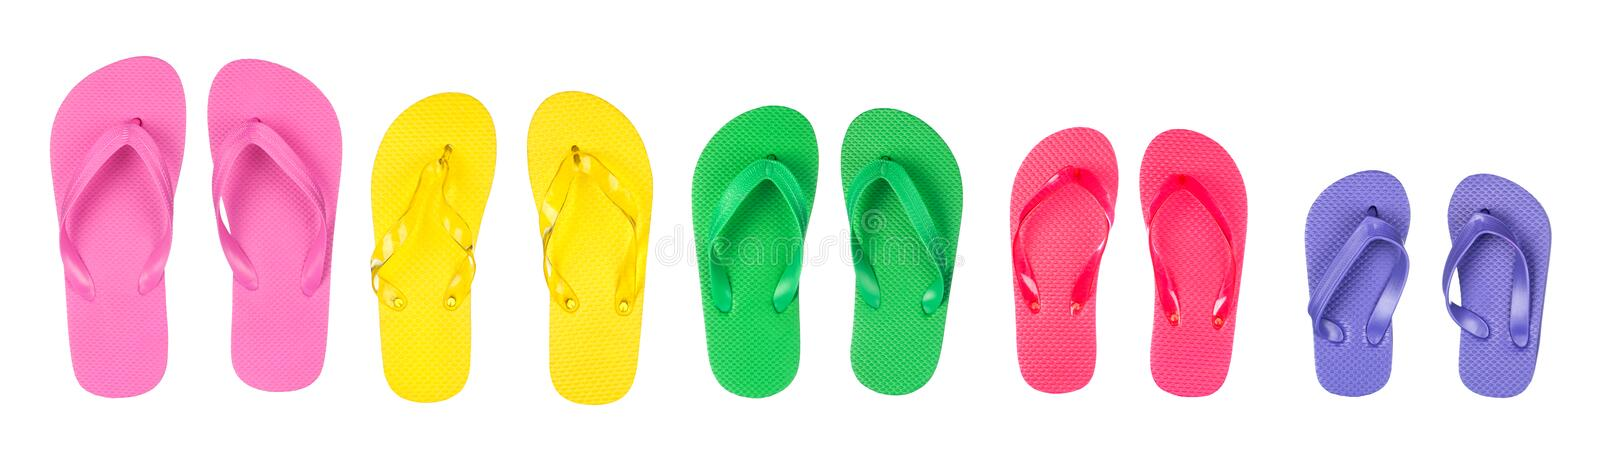 Download Flip flops stock photo. Image of flops, thong, pink, isolated - 26316454